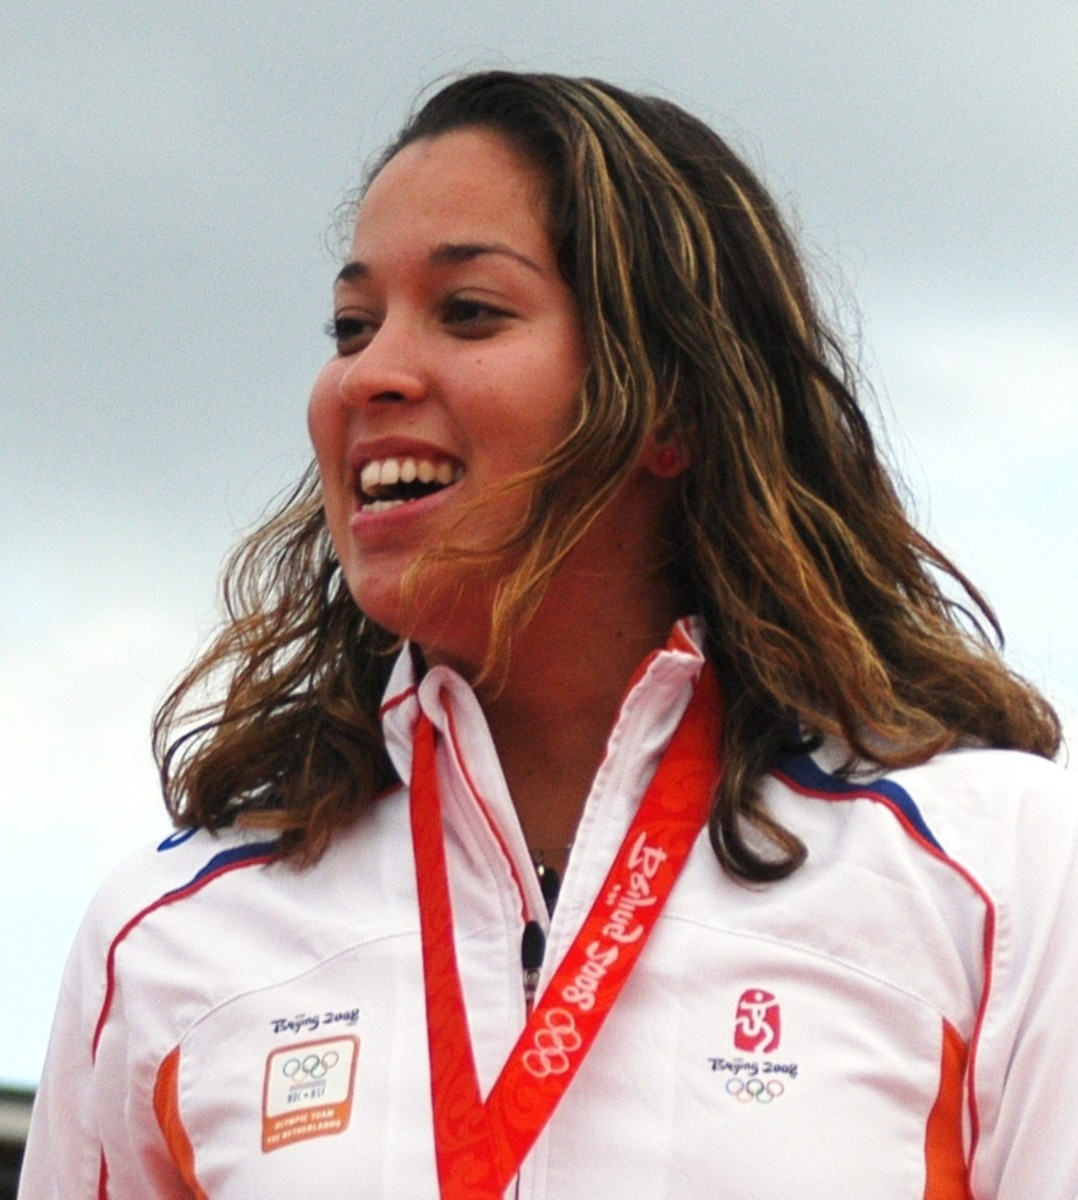 Swimmer Ranomi Kromowidjojo celebrates winning a gold medal at the 2008 Summer Olympics in Beijing, China. She did this at the age of 17 which makes it that much more remarkable.